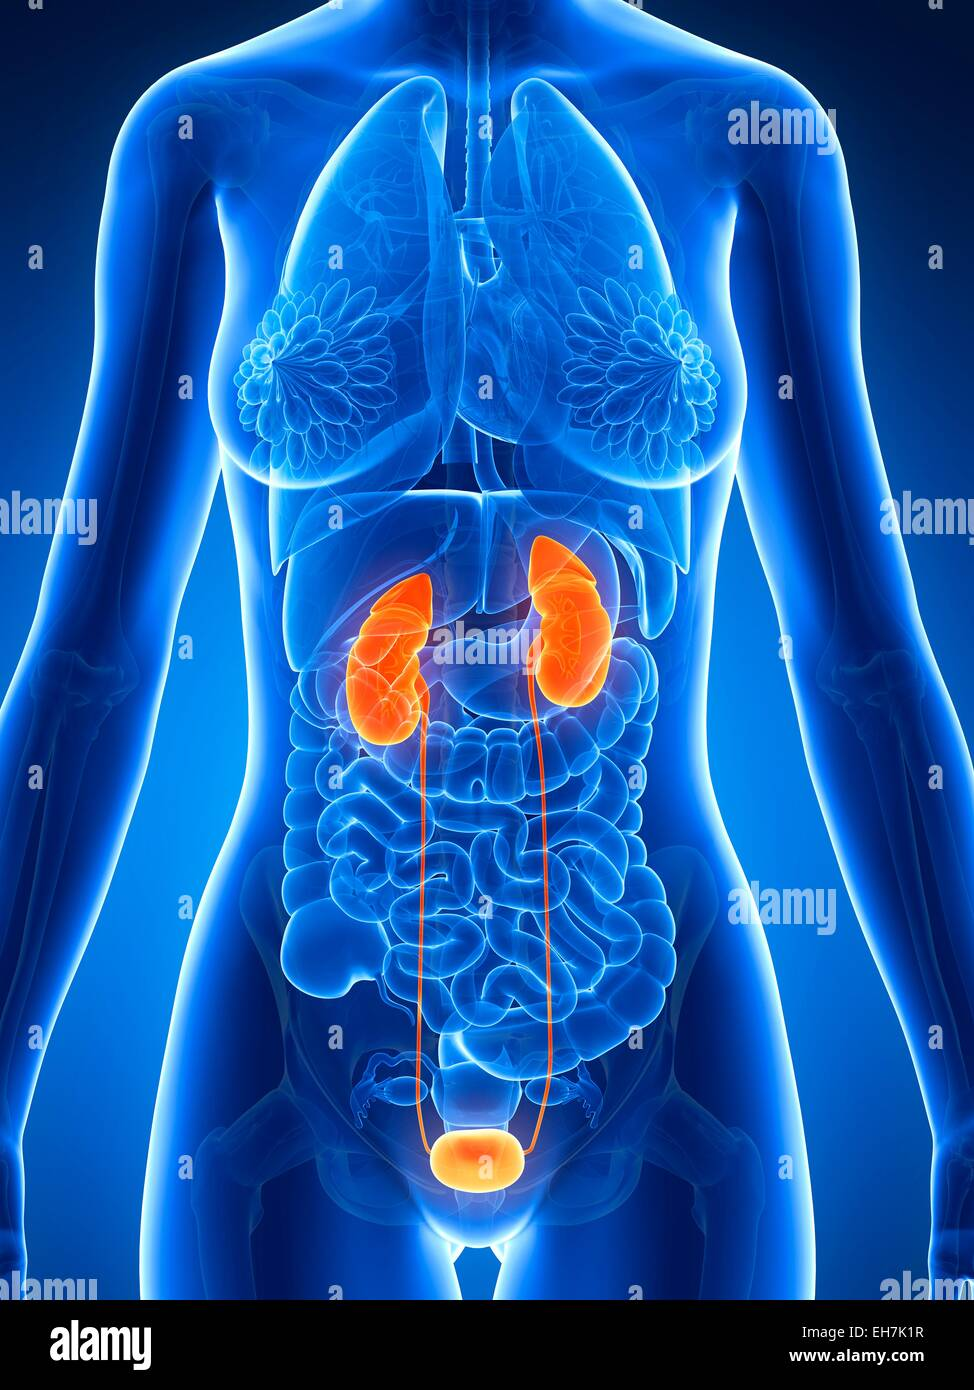 Female Urinary System Illustration Stock Photo 79459235 Alamy